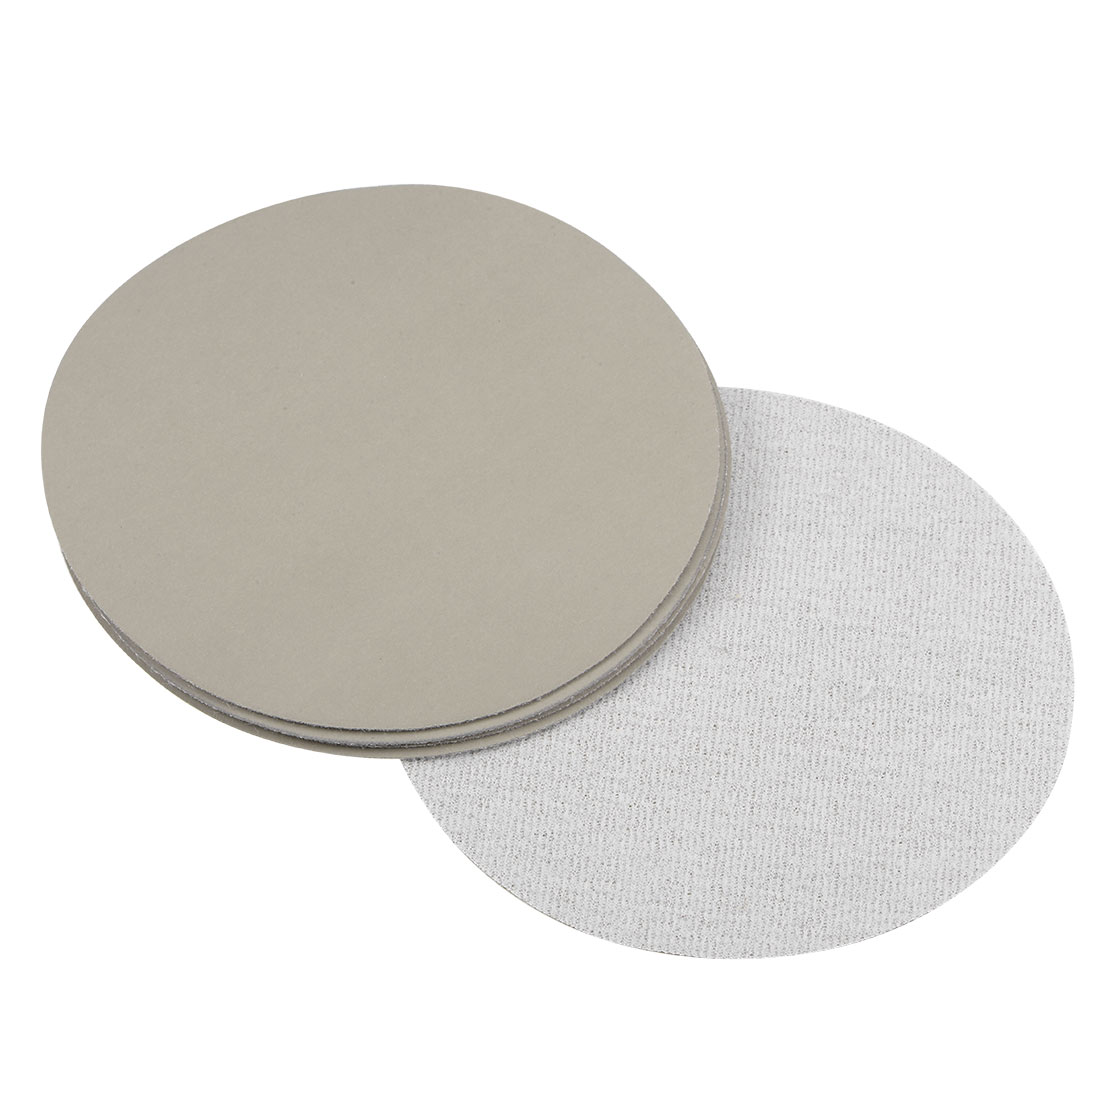 5 inch Wet Dry Discs 5000 Grit Hook and Loop Sanding Disc Silicon Carbide 5pcs